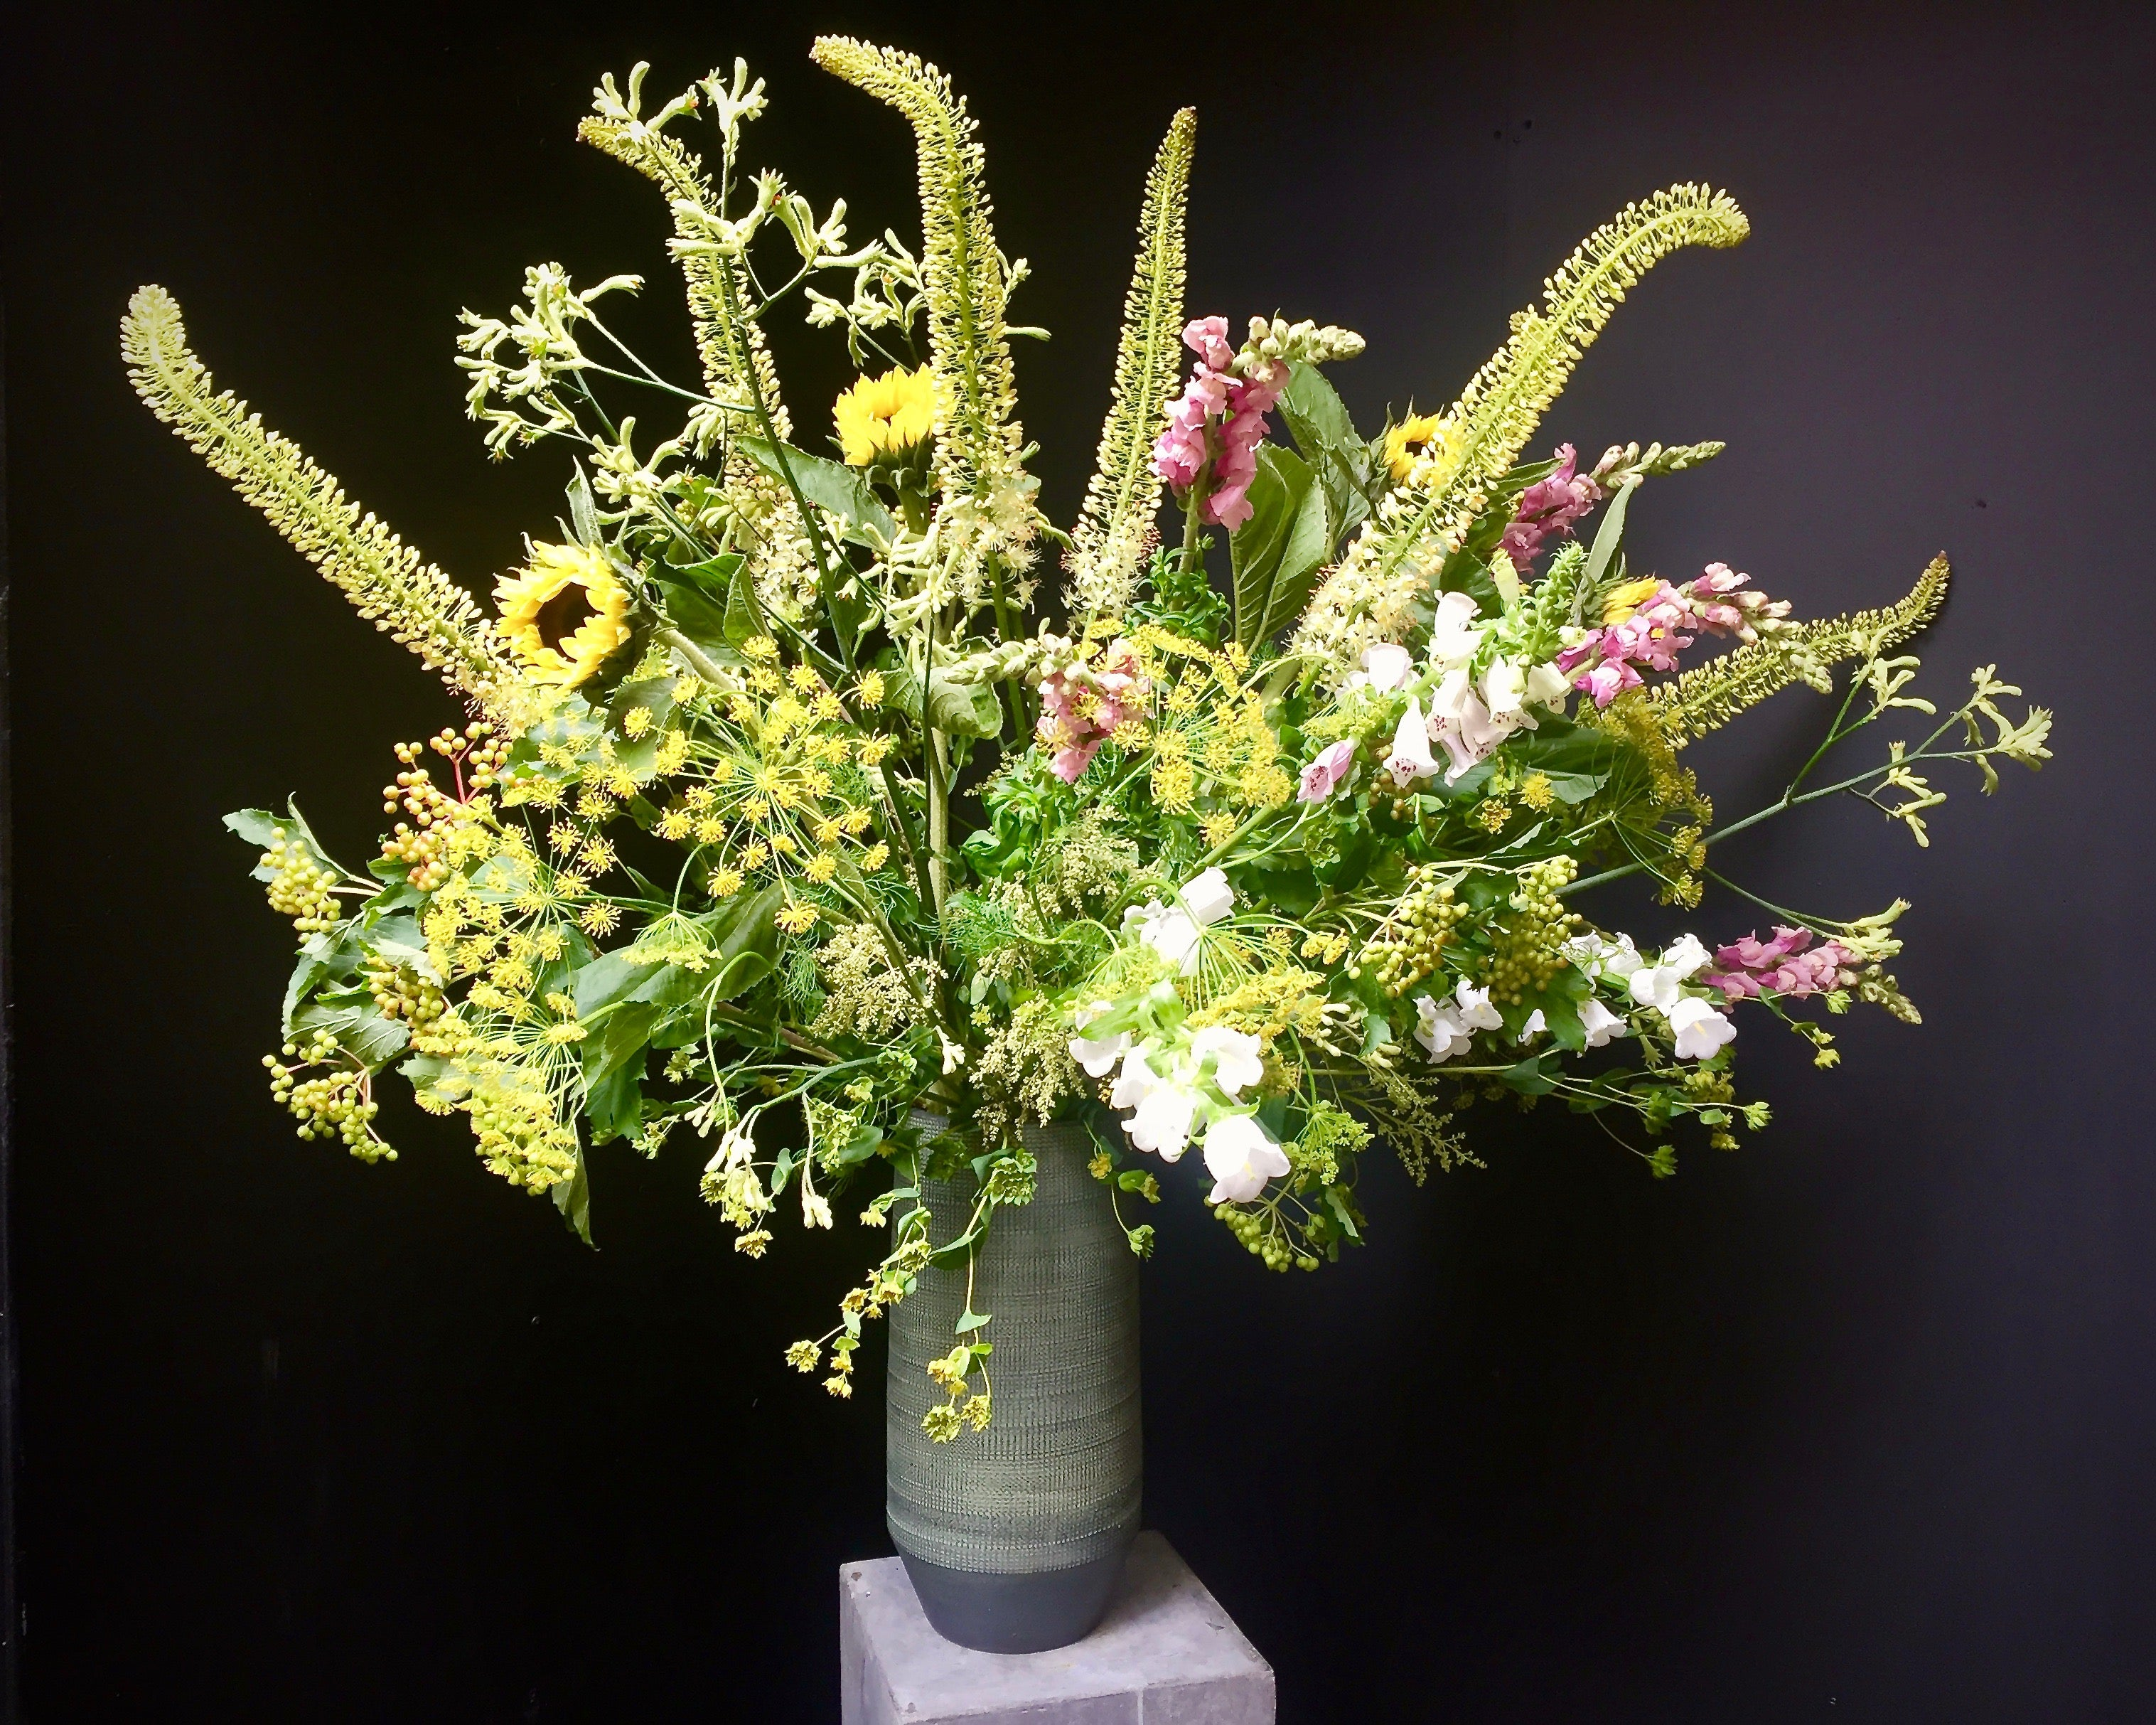 Floristry 2 day Intensive